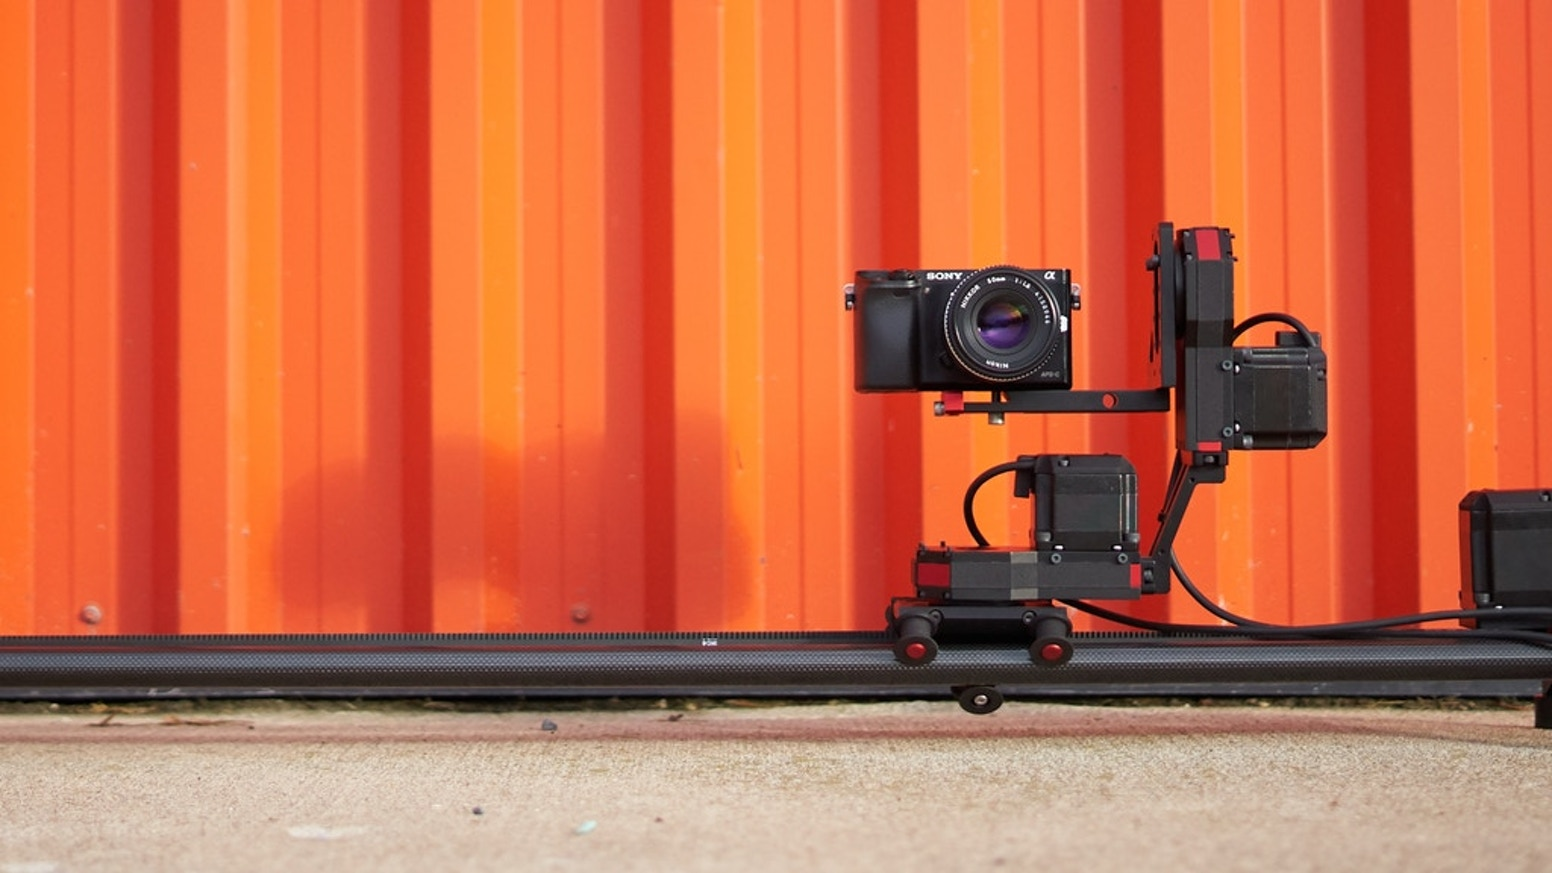 An automated camera mount that can be used to frame up subjects and take pictures and video with a DSLR -> CLICK BELOW TO BACK AXIBOv2.0!